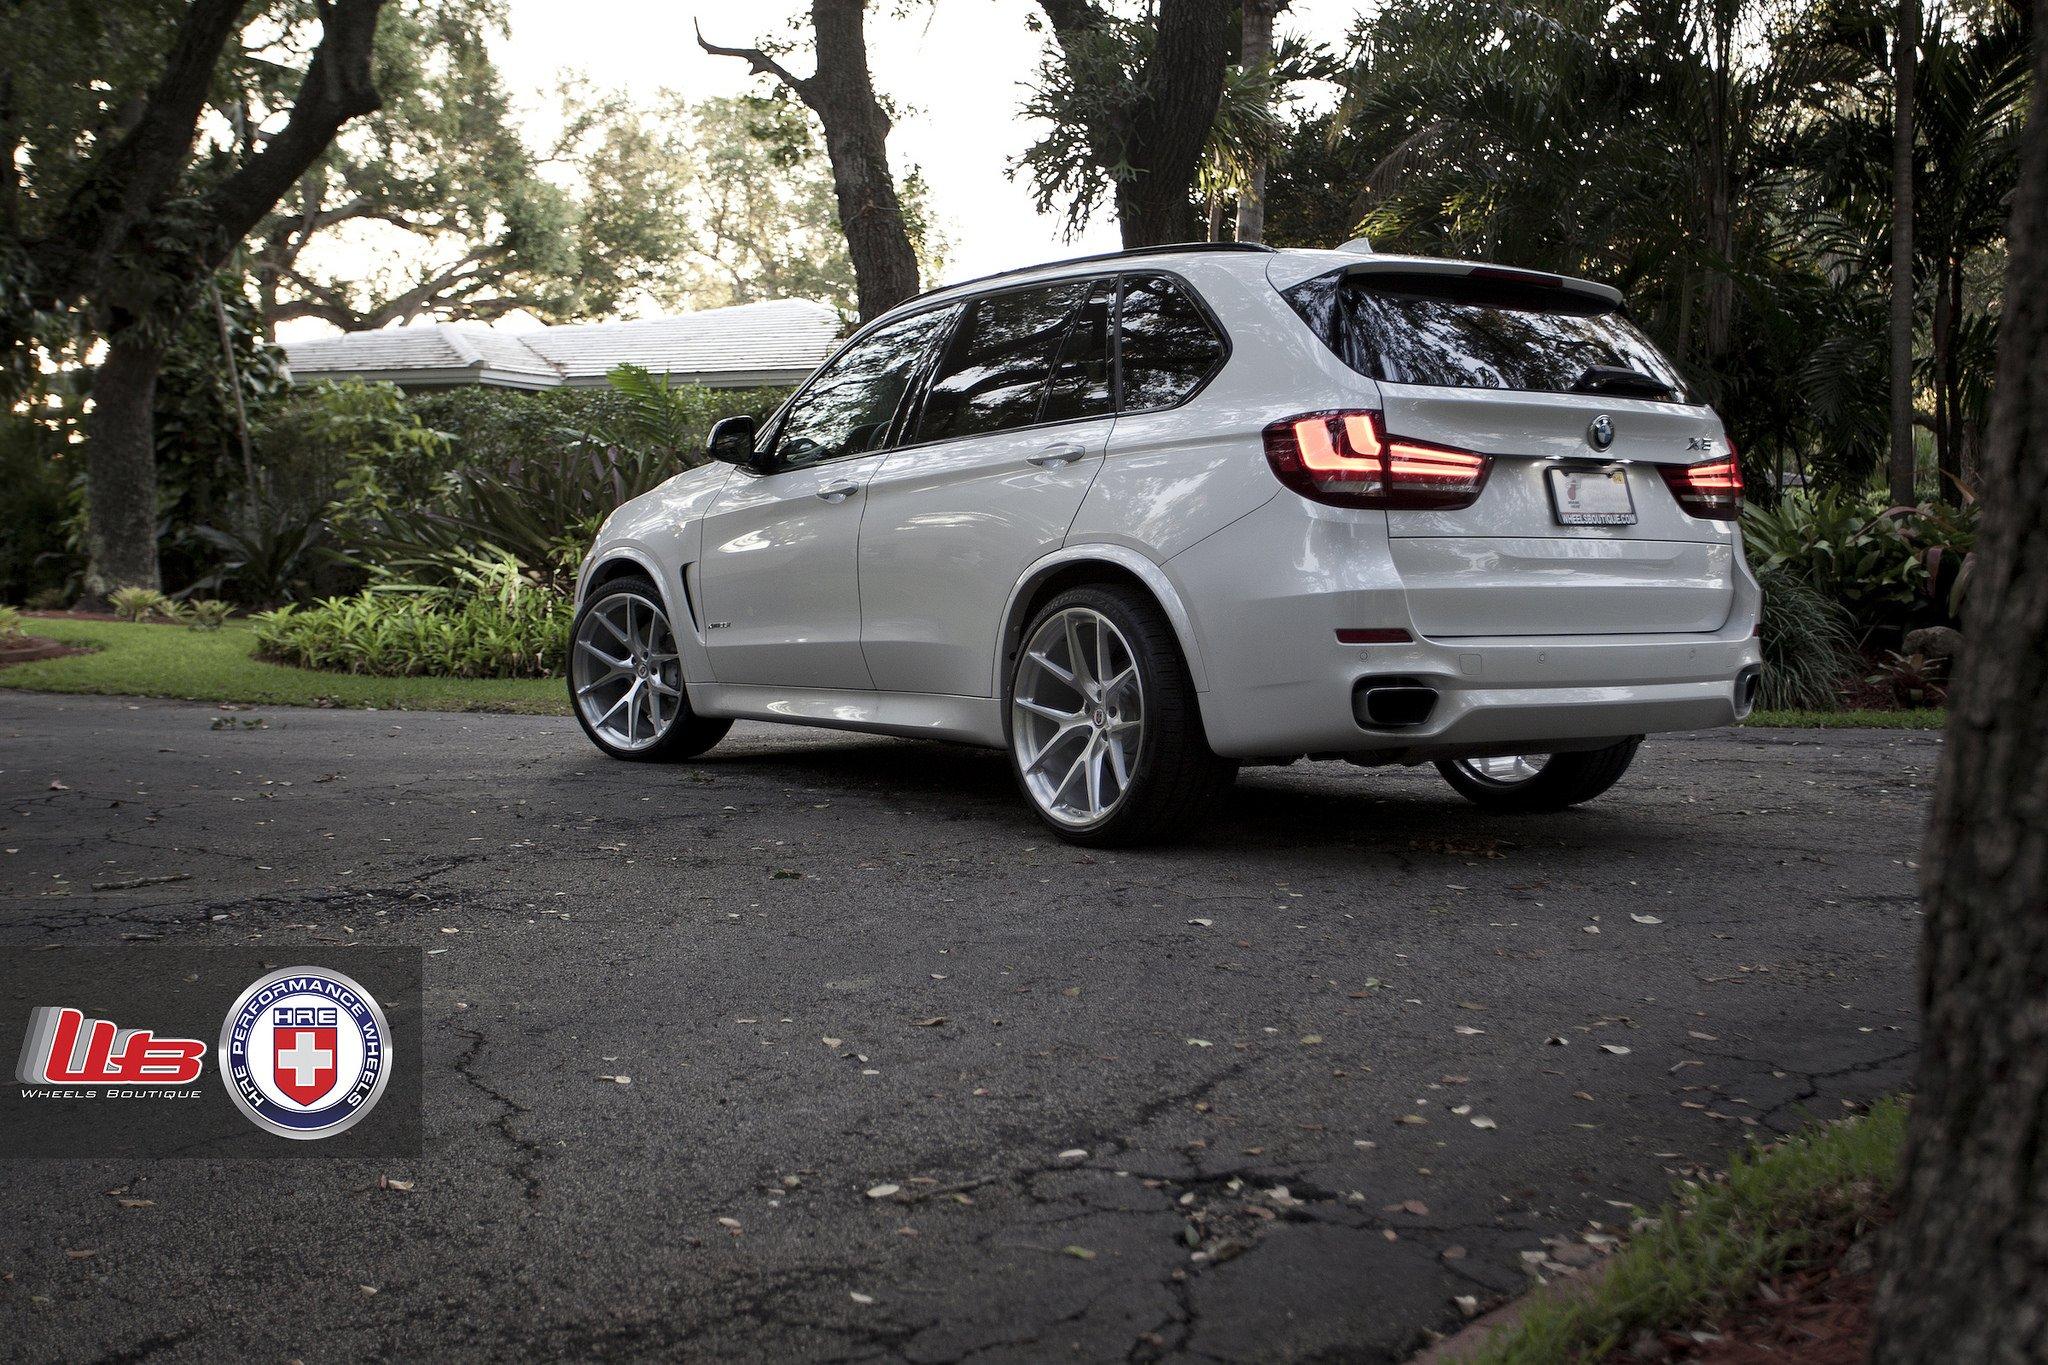 Bmw X5 Hre Cars Tuning Wheels Cars Suv Wallpaper 2048x1365 579347 Wallpaperup